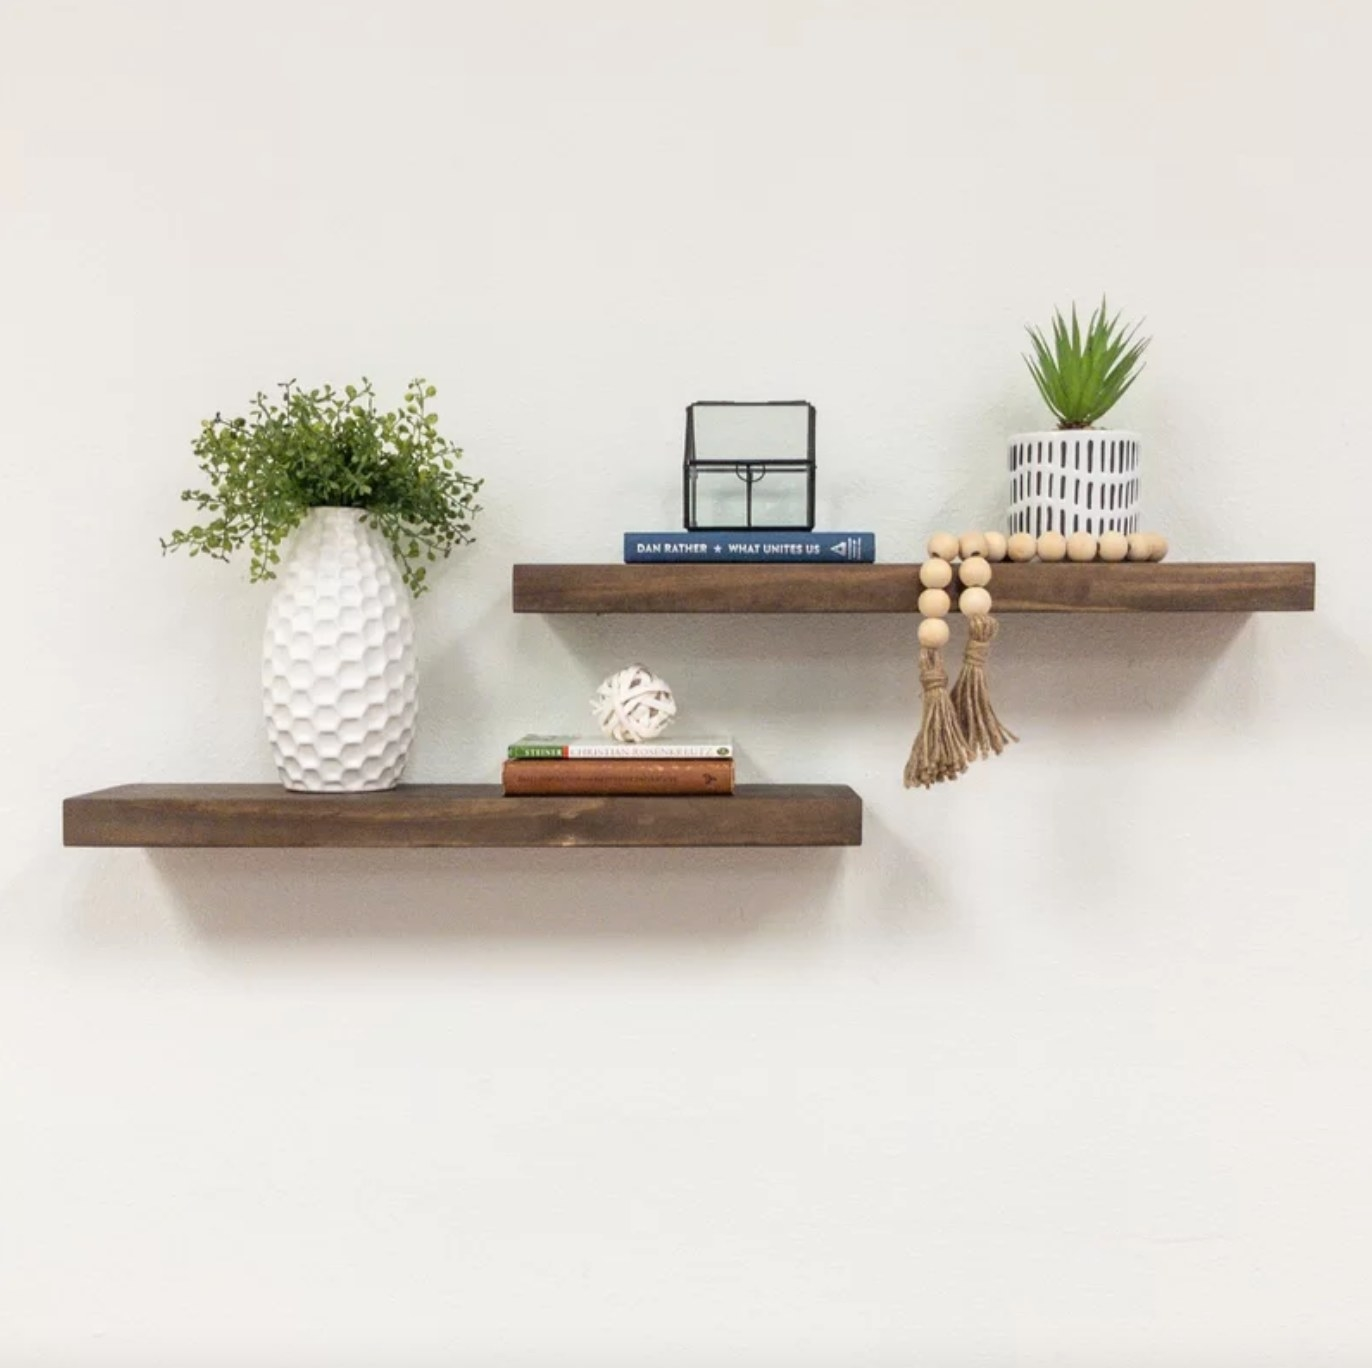 The set of two pine wood floating shelves in dark walnut holding plants, books, and trinkets